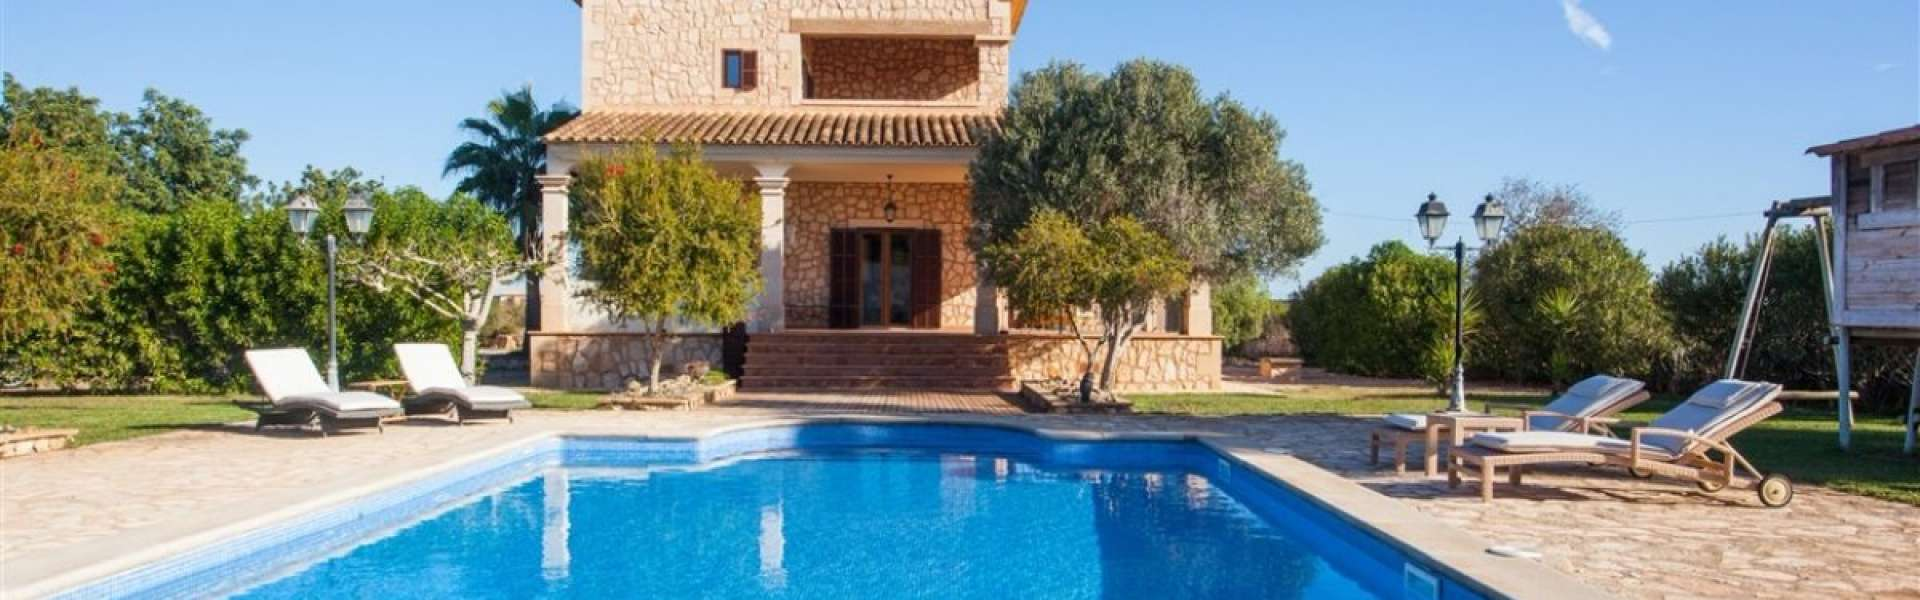 Beautiful natural stone mansion - Es Llombards